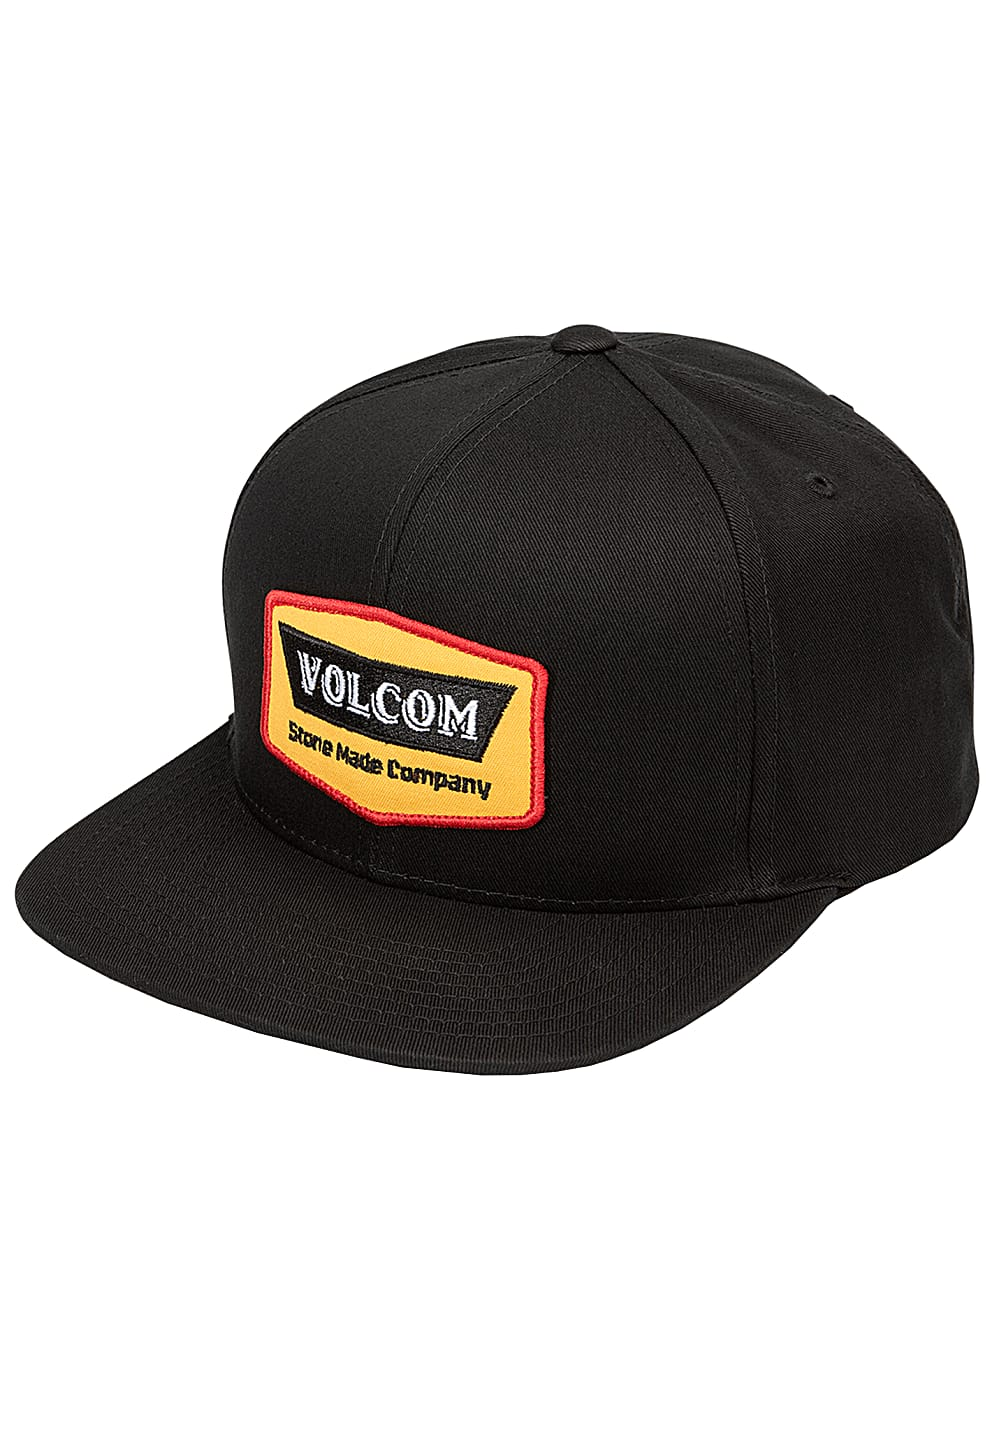 best service 9b1cb 977e0 ... Volcom Cresticle - Snapback Cap - Black. Back to Overview. 1  2.  Previous